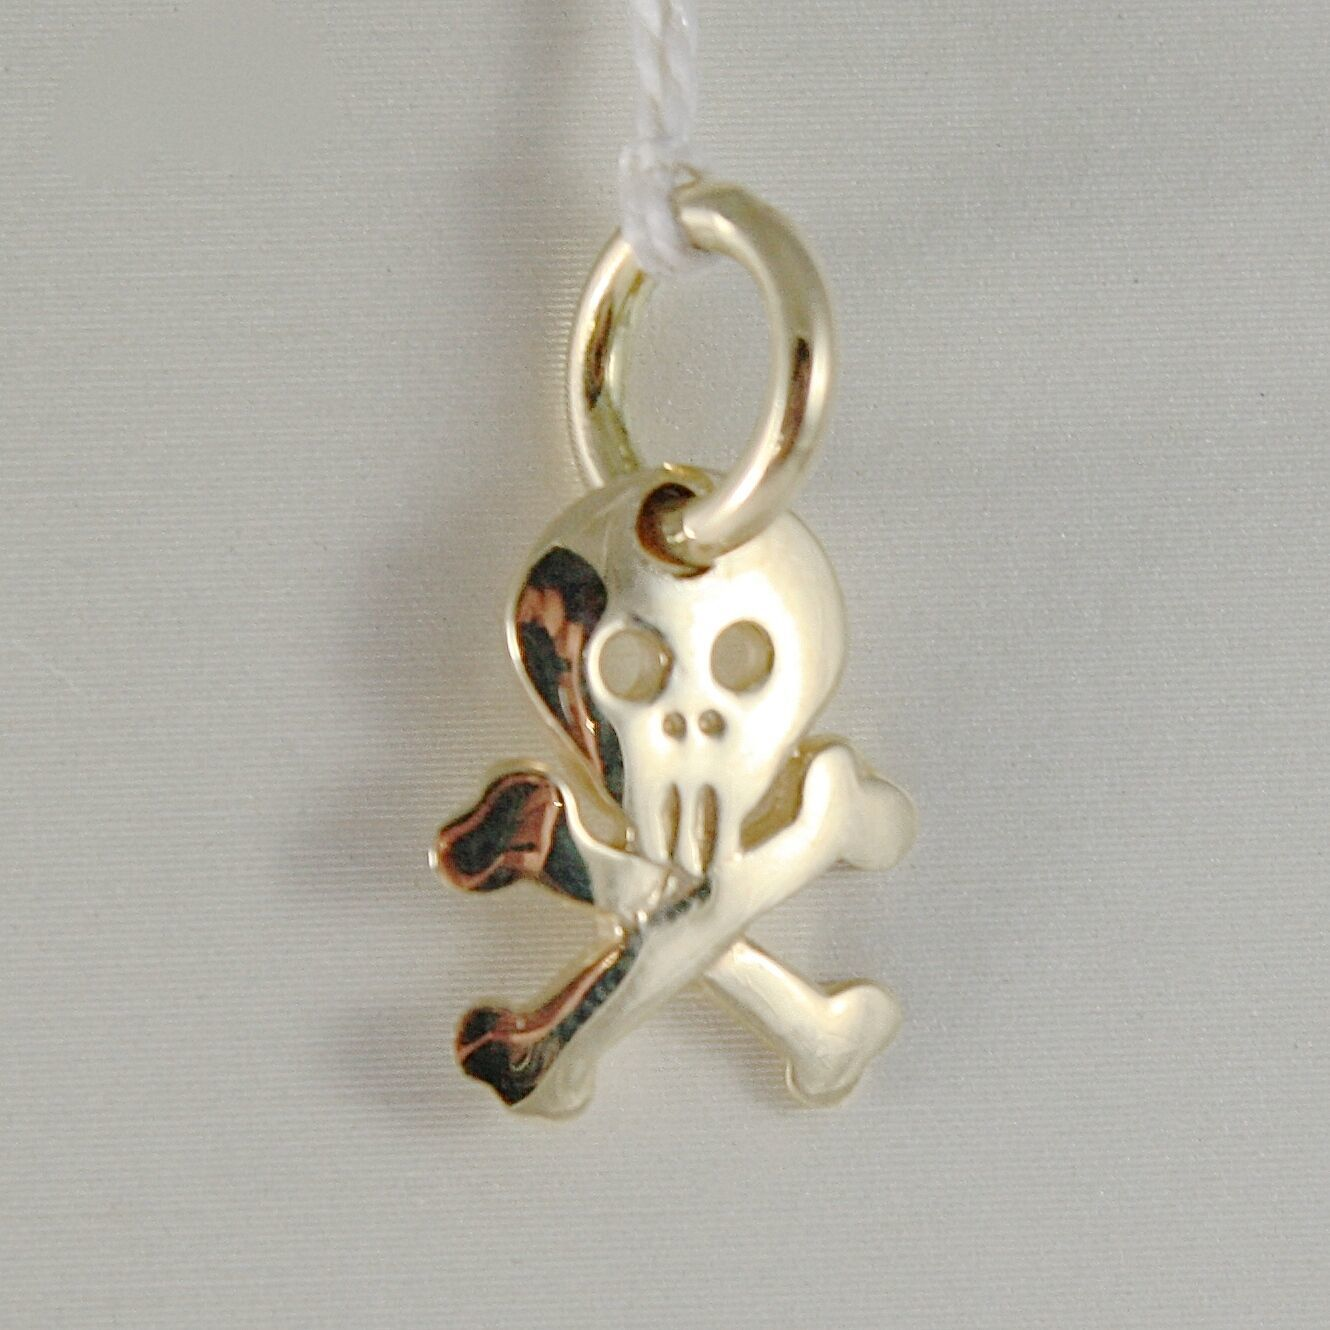 SOLID 18K YELLOW GOLD SKULL & BONES FLAT PENDANT SMOOTH LUMINOUS MADE IN ITALY